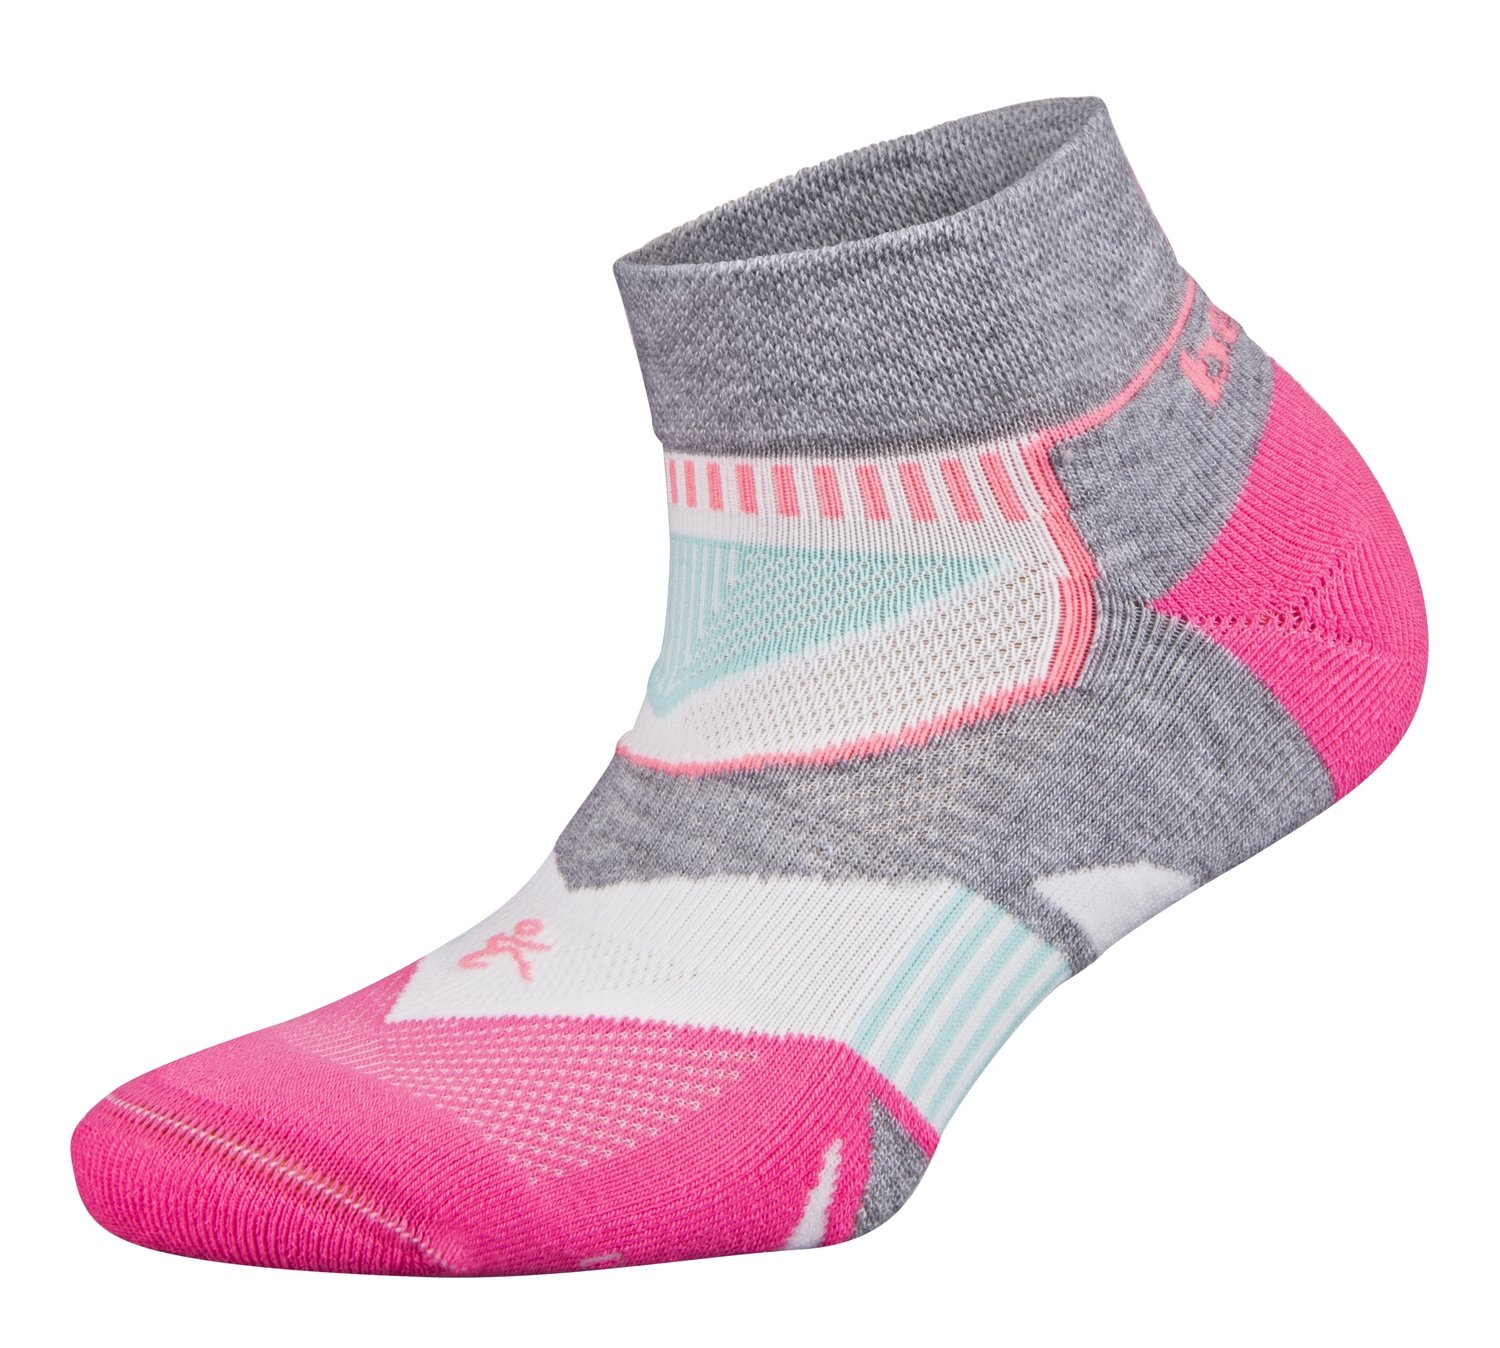 Enduro Low Cut Womens Socks Pink/Grey